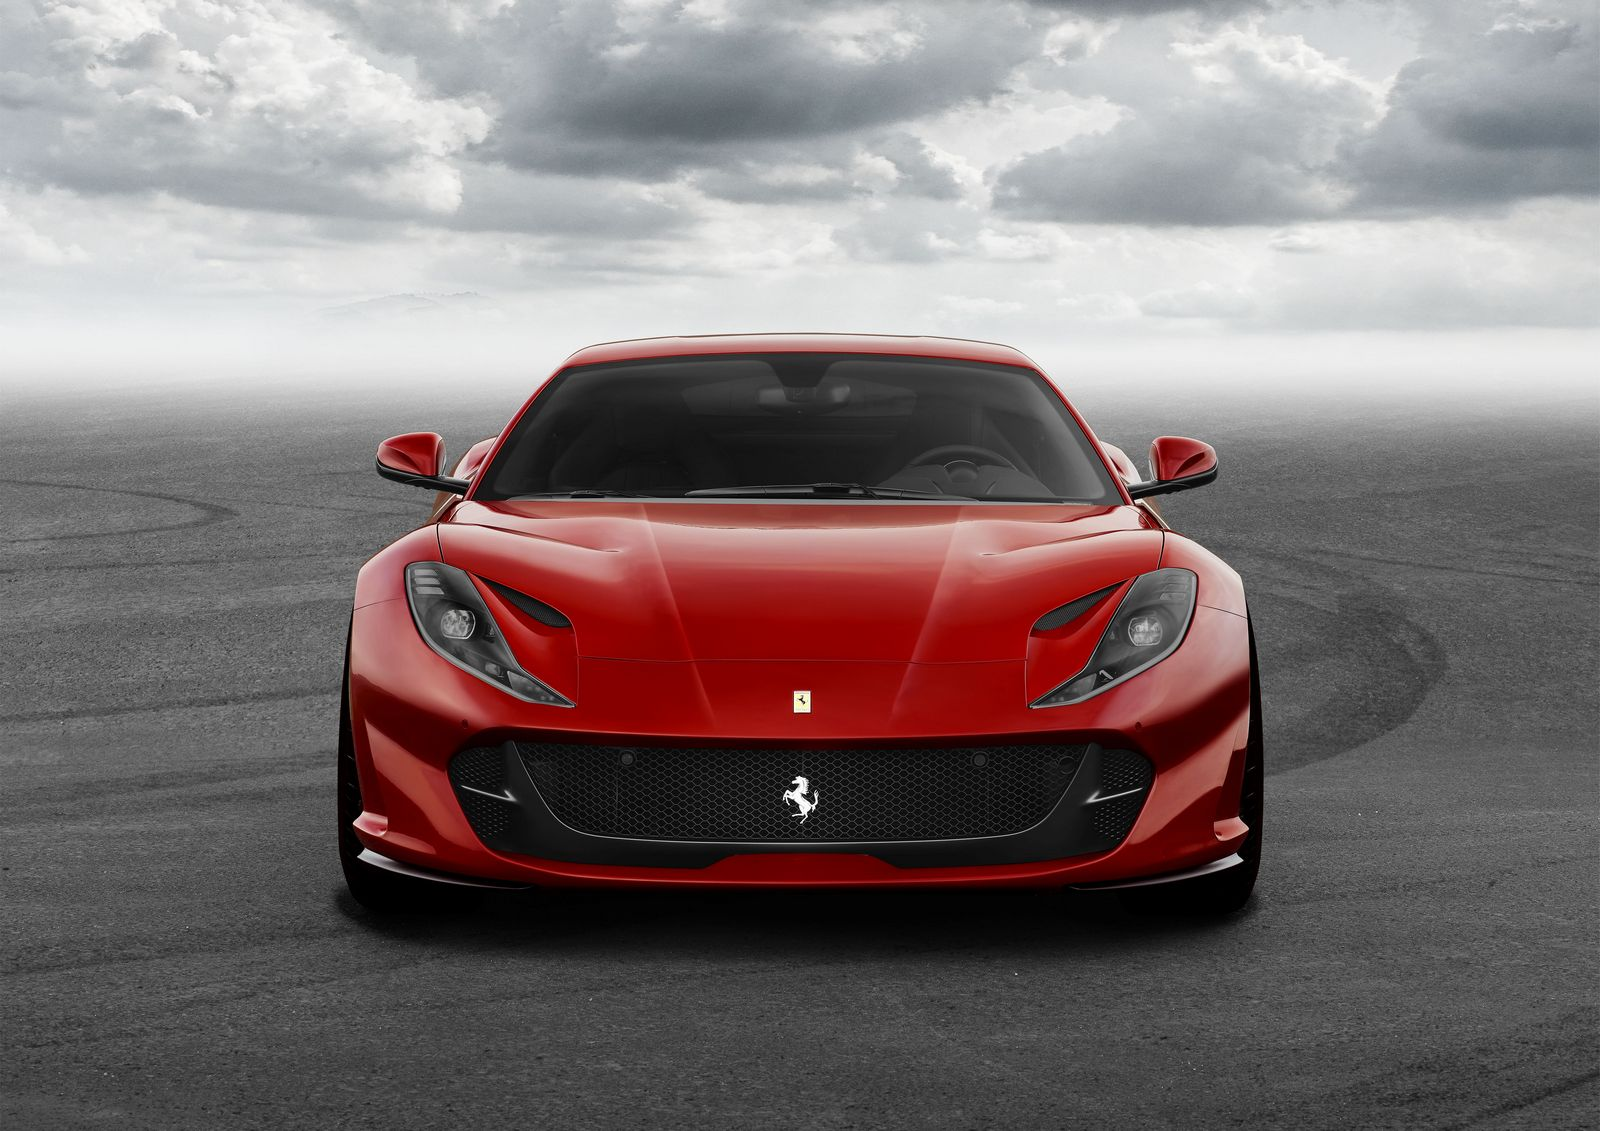 luxusni-ferrari-812-superfast